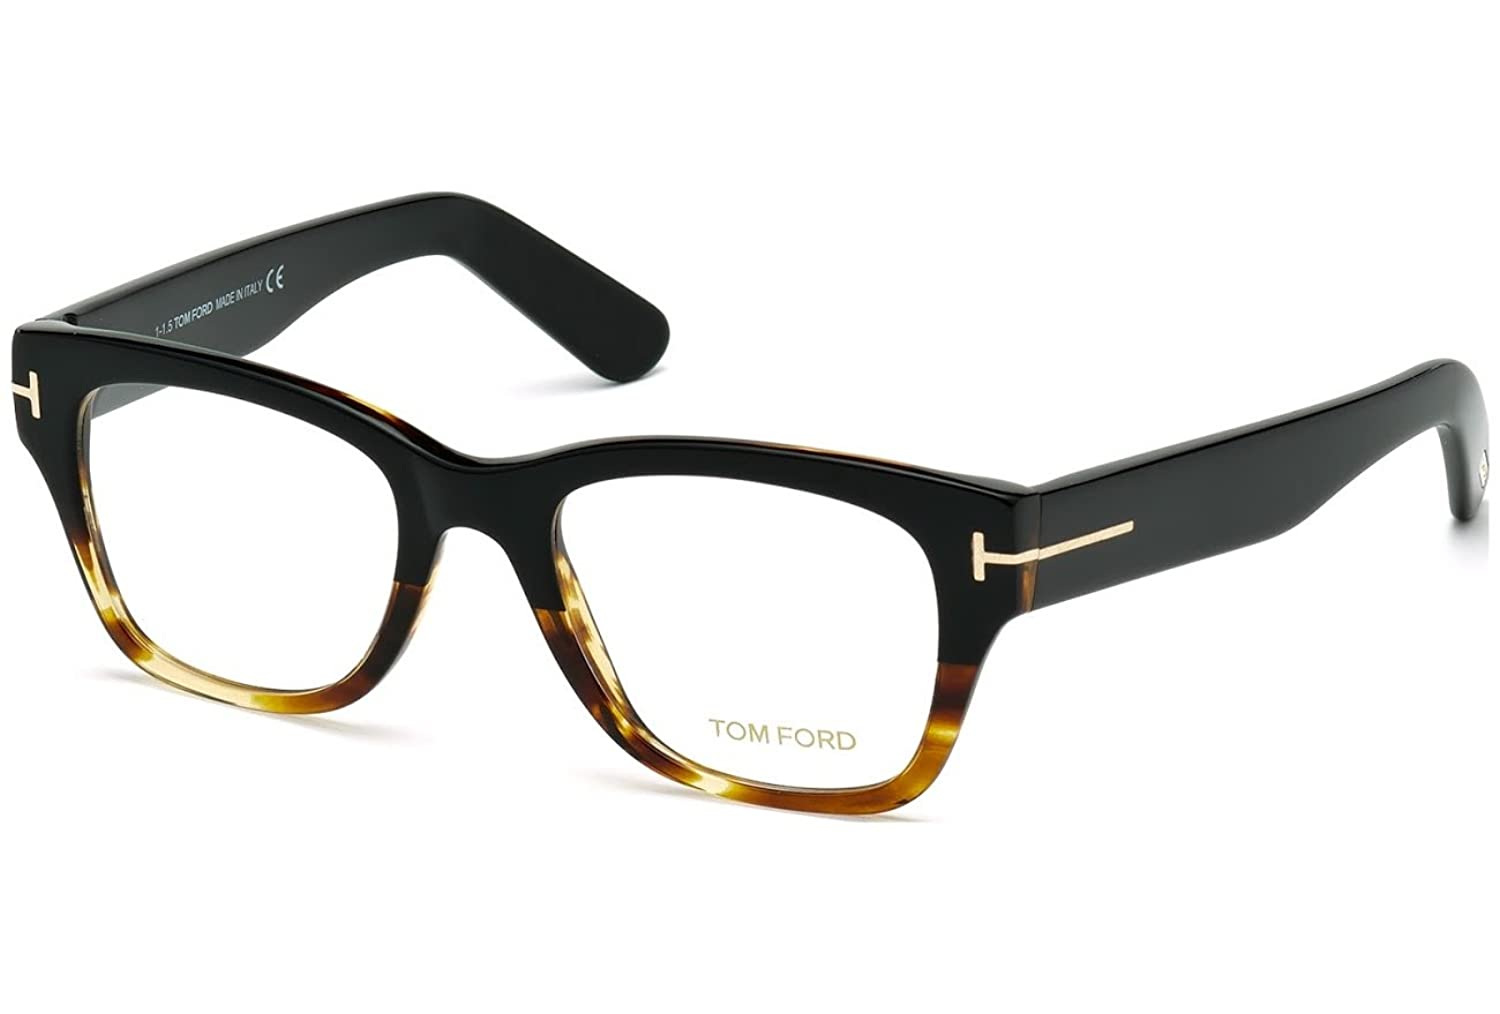 Eyeglasses Tom Ford TF 5379 FT5379 005 black/other at Amazon Men\'s ...